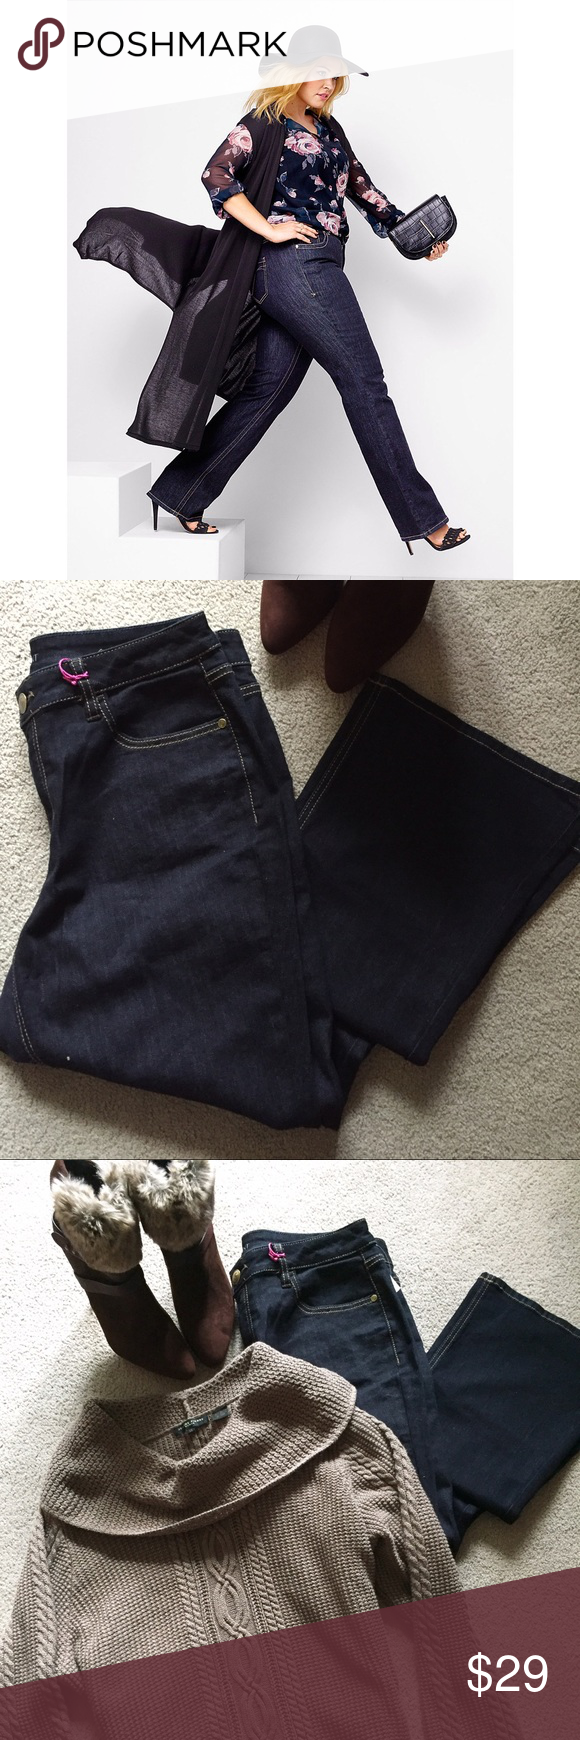 💕Lane Bryant Genius Fit Boot Cut Jeans NWT 💕 Fashionable and fabulously comfortable Genius Fit jeans. Black denim, boot cut, brand new with tags. BOGO 50% off another item plus bundle discount!!! 💃💃💃 Lane Bryant Jeans